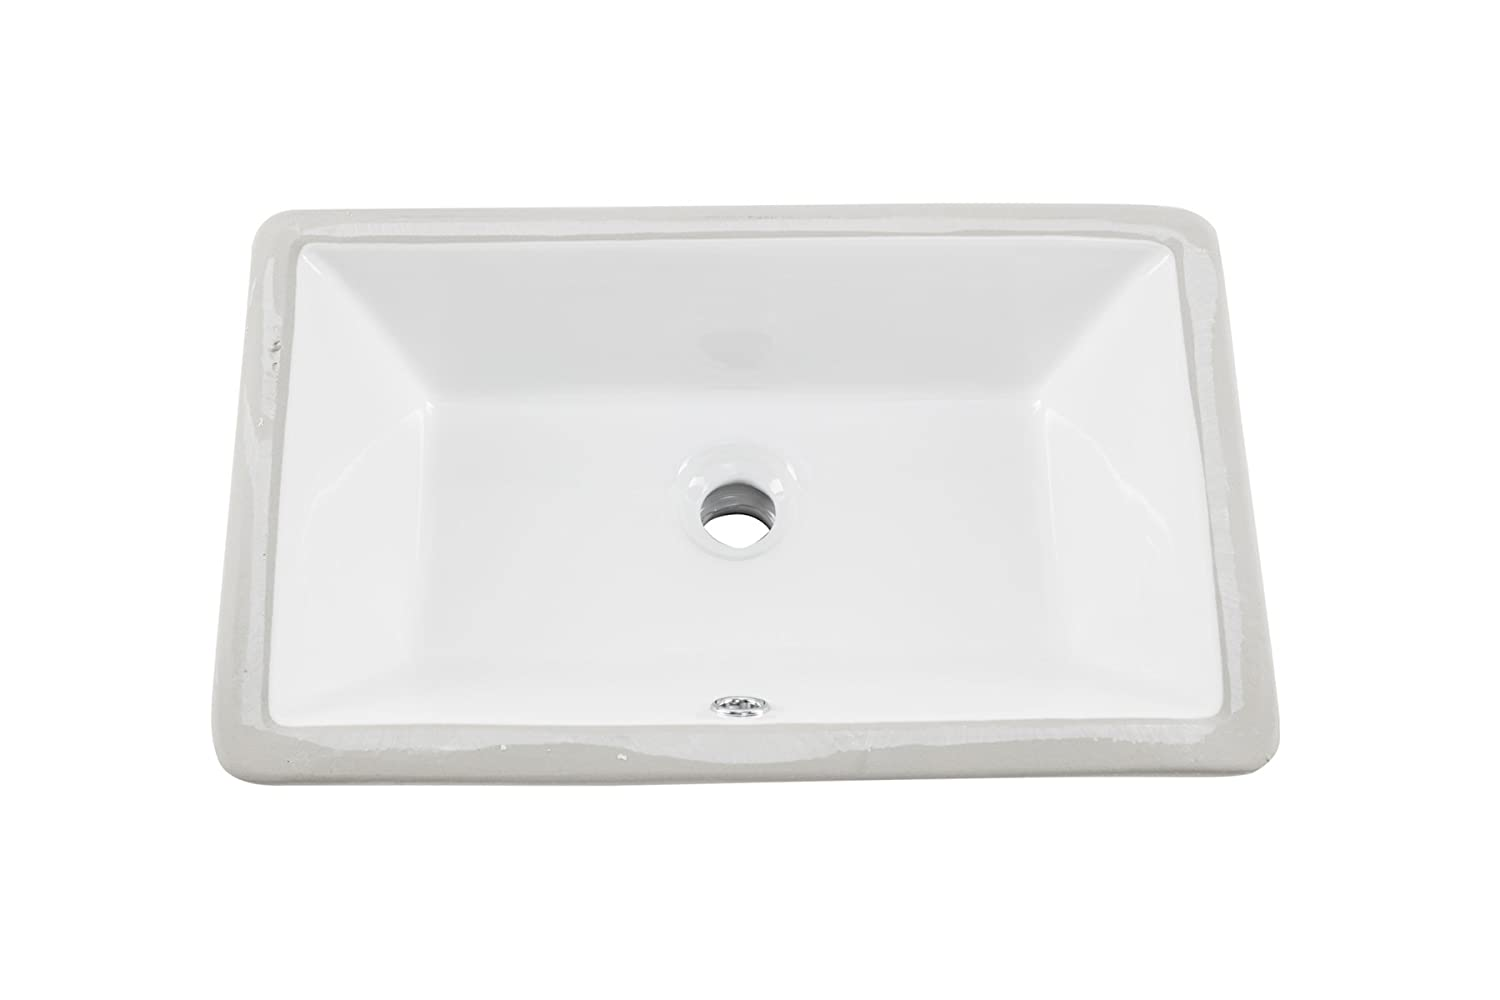 Bathroom sink chip repair - 1181cbw 18 X11 White Rectangular Porcelain Undermount Bathroom Sink Vanity Sinks Amazon Com